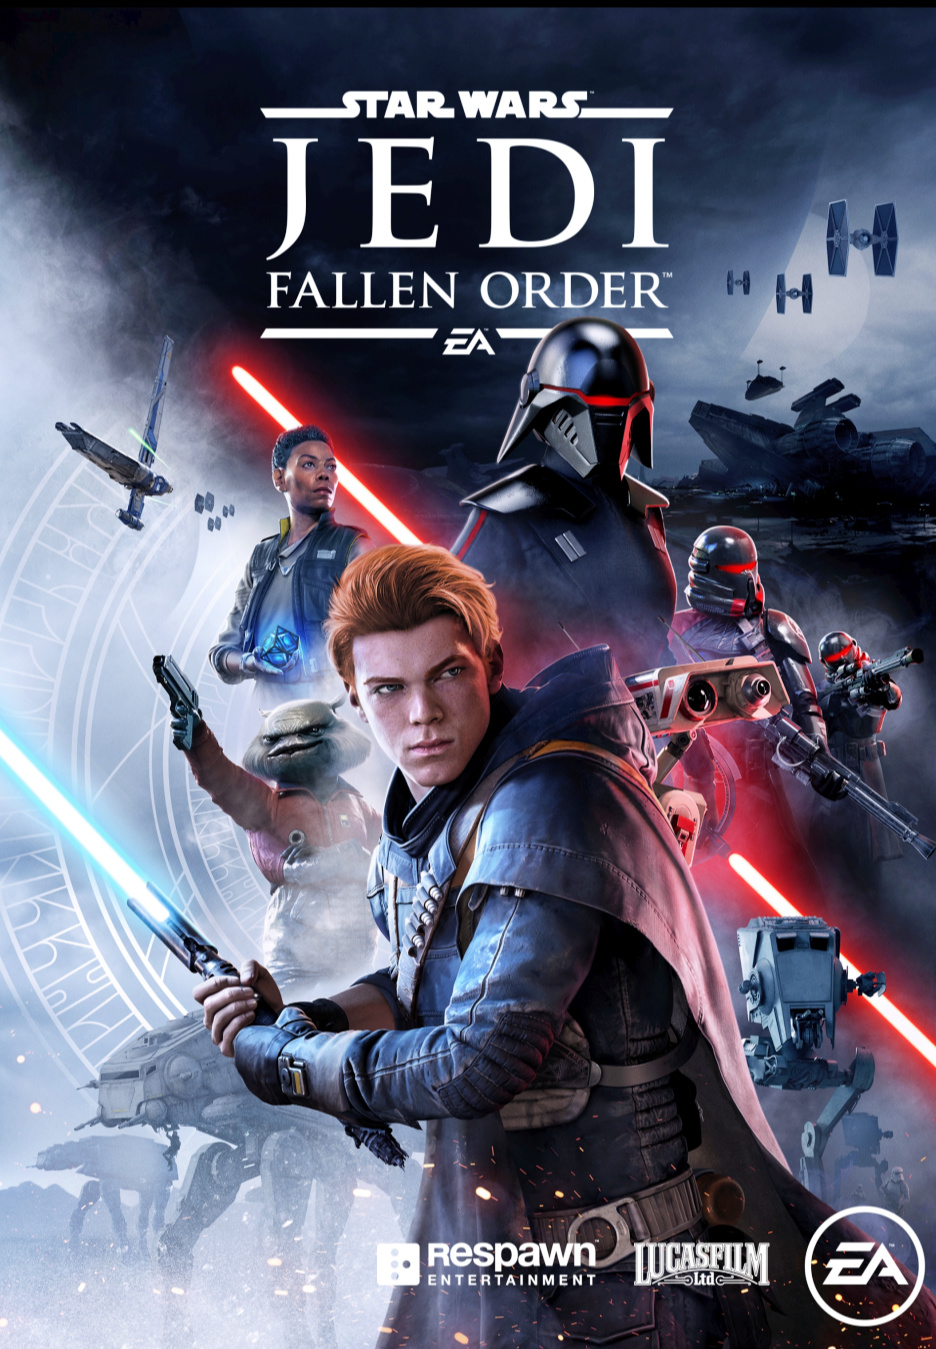 Stars Wars Jedi Fallen Order playstation